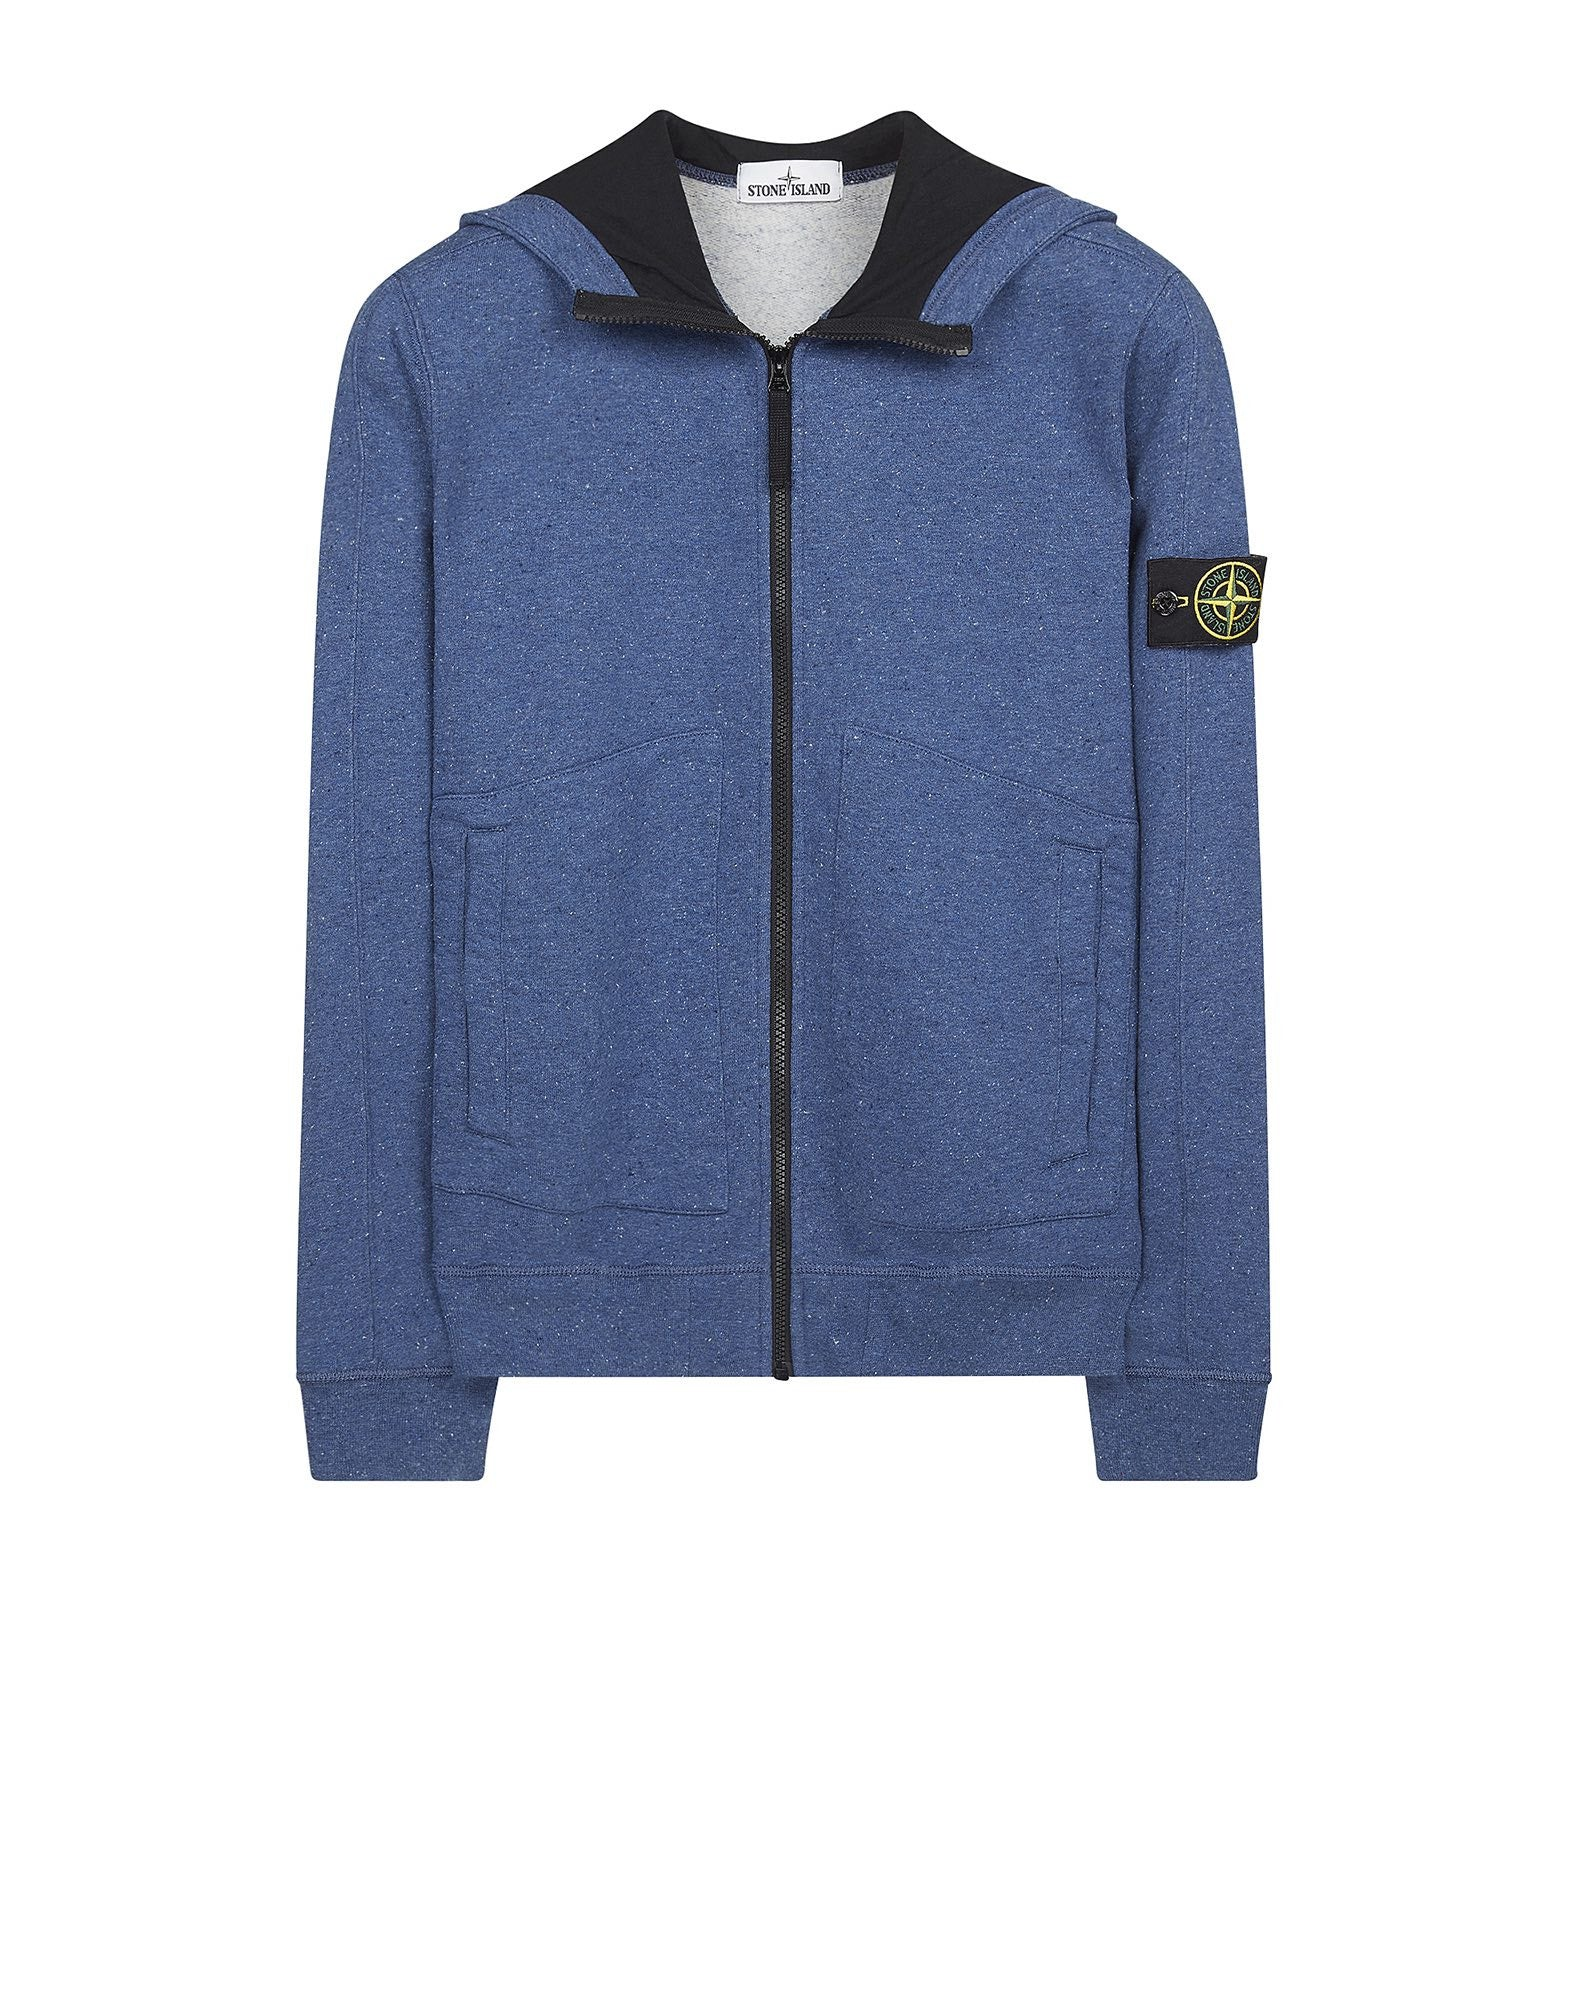 65555 Hooded Blouson in Blue